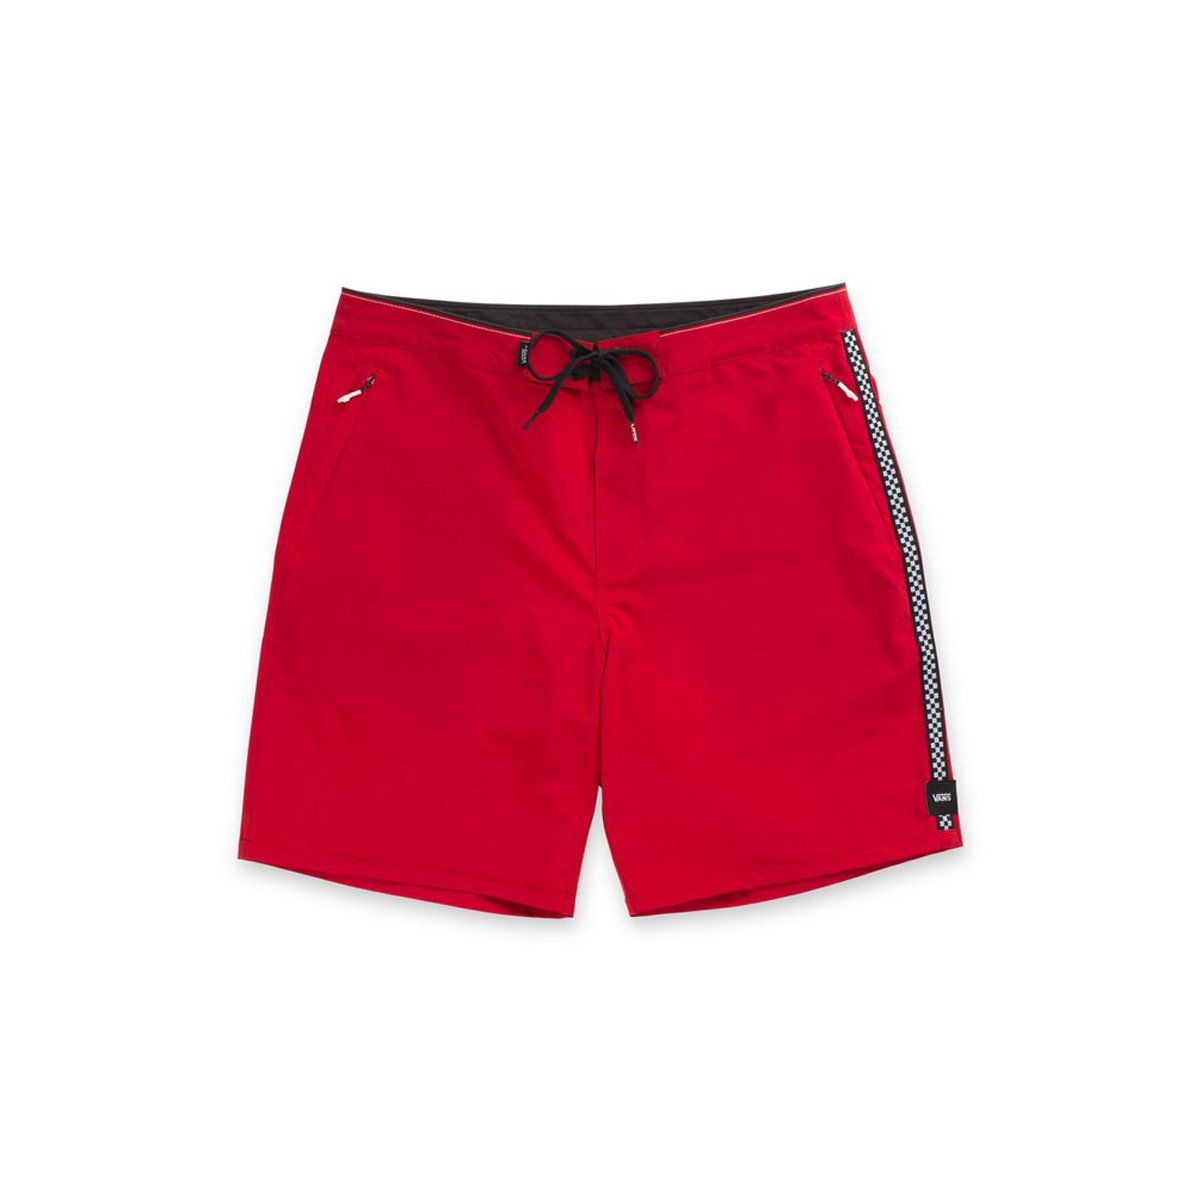 BERMUDA VANS VOYAGE TRUNK CHILI PEPPER